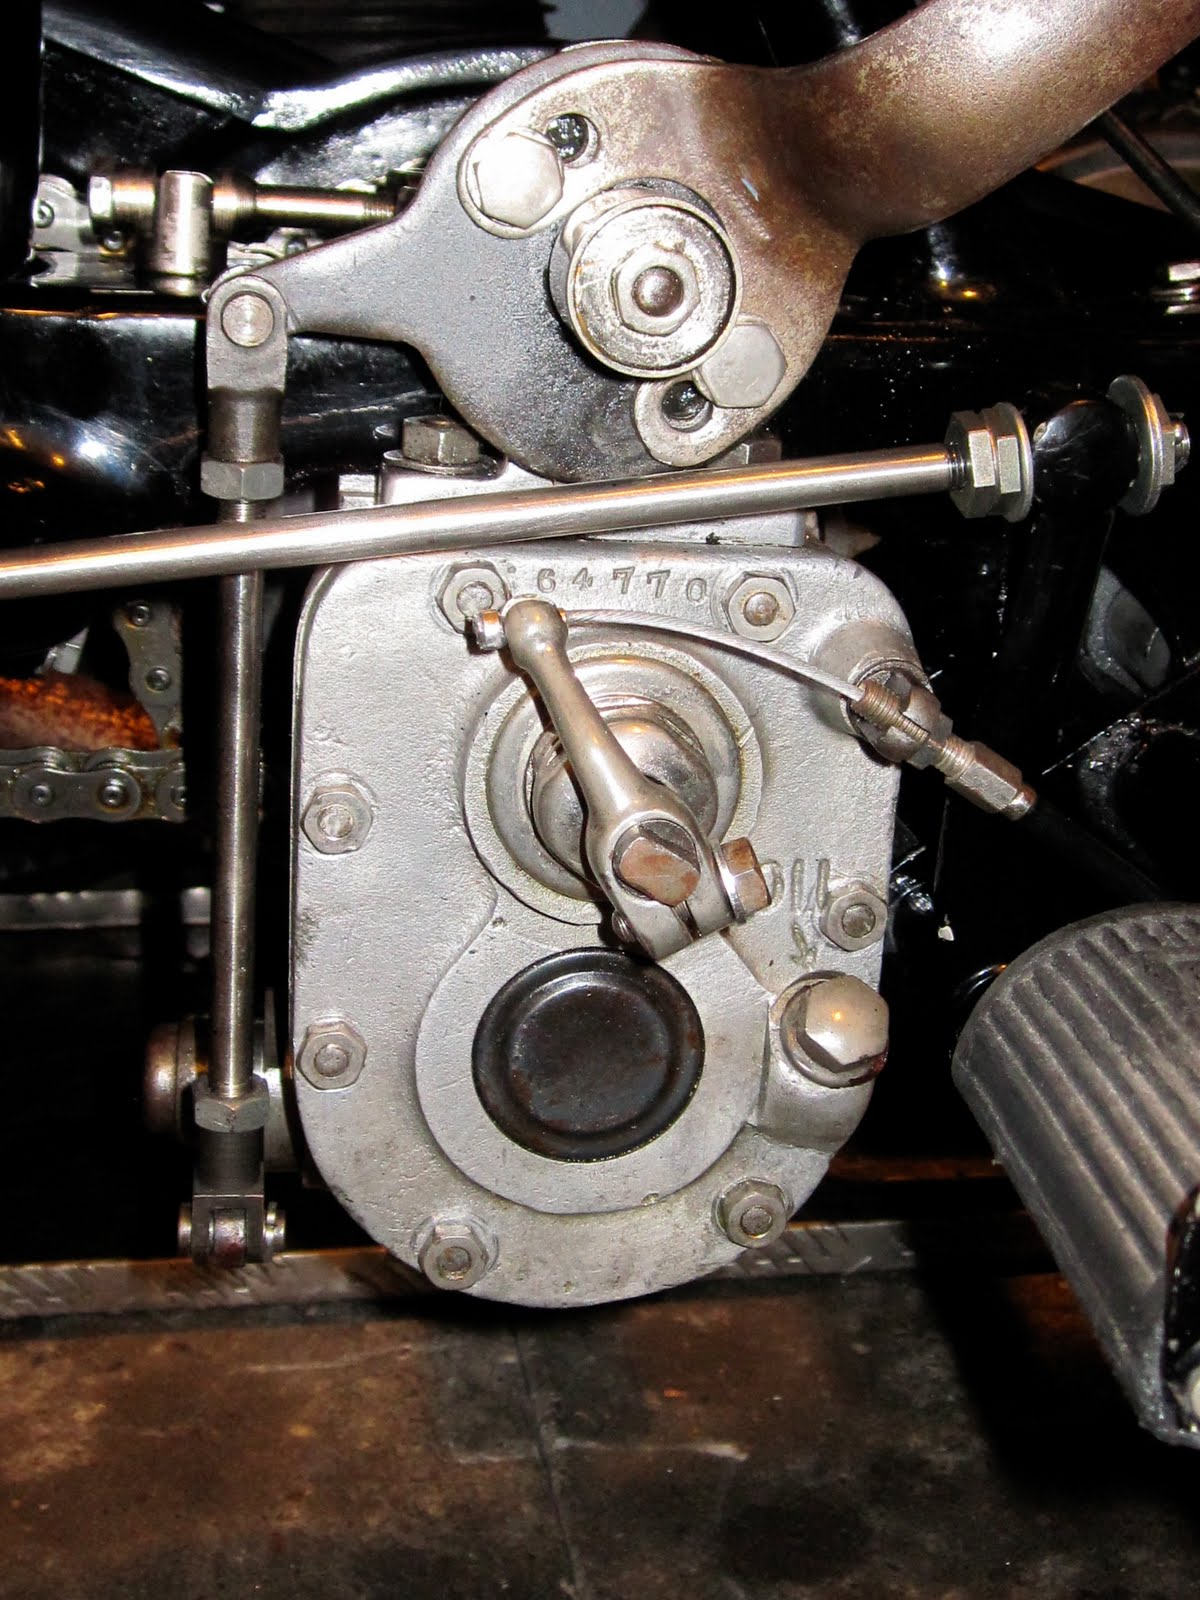 medium resolution of vintage norton motorcycles sturmey archer gearboxes fitted to vintage nortons